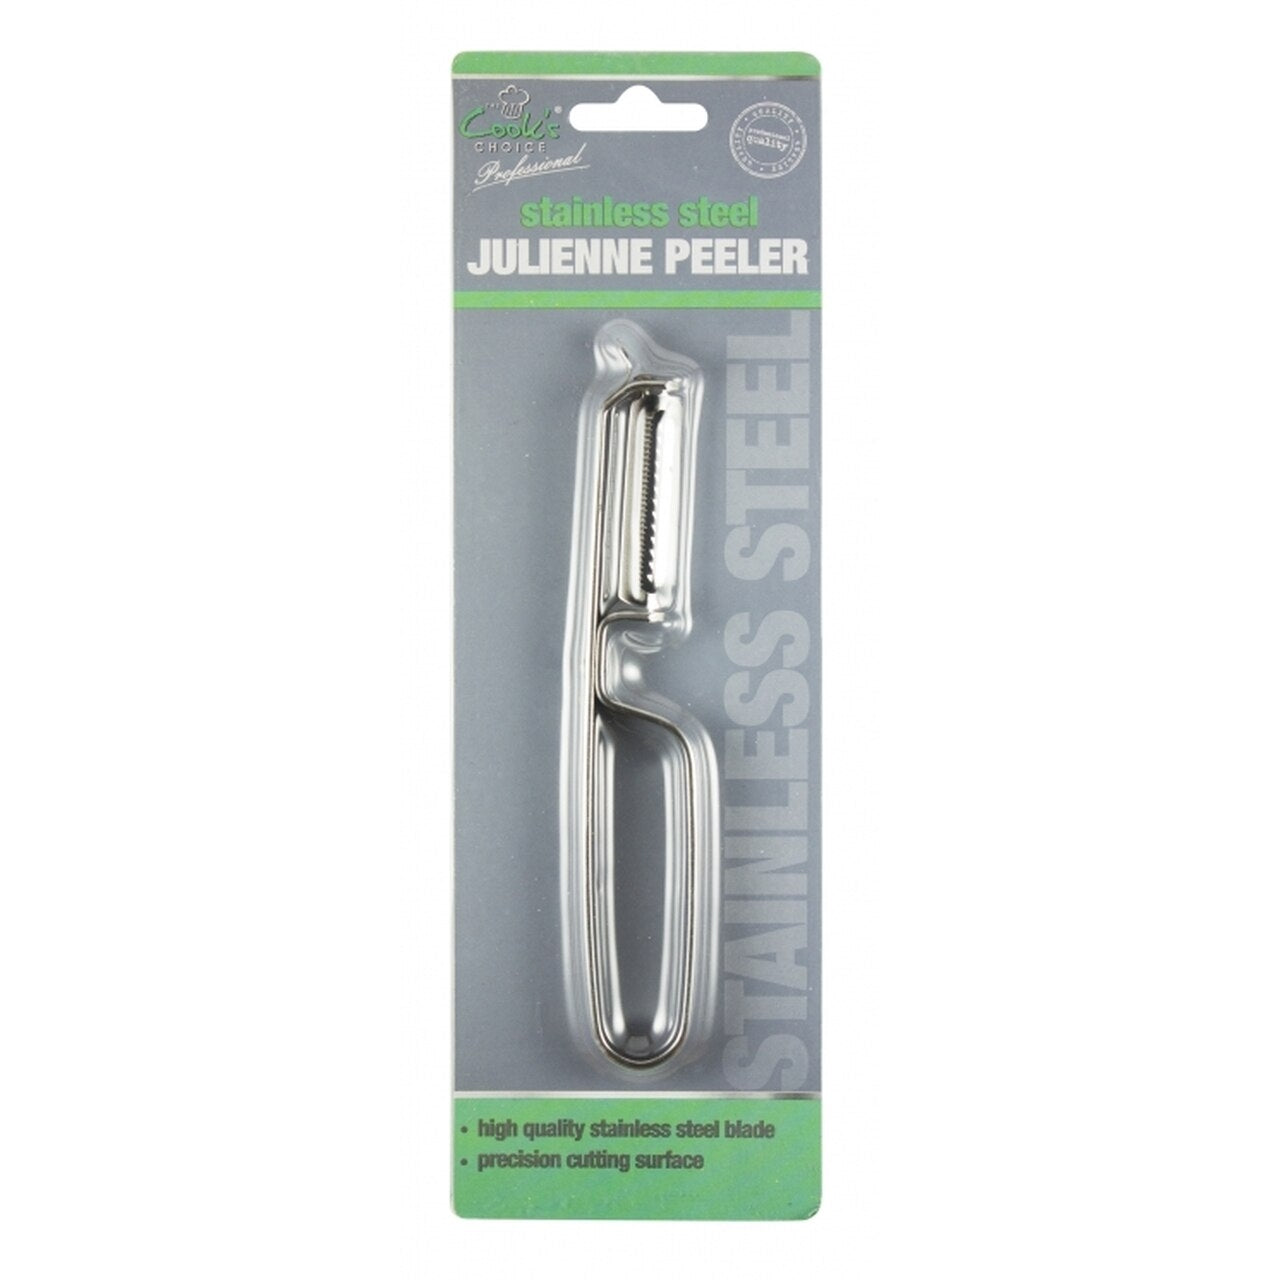 Stainless Steel Julienine Peeler